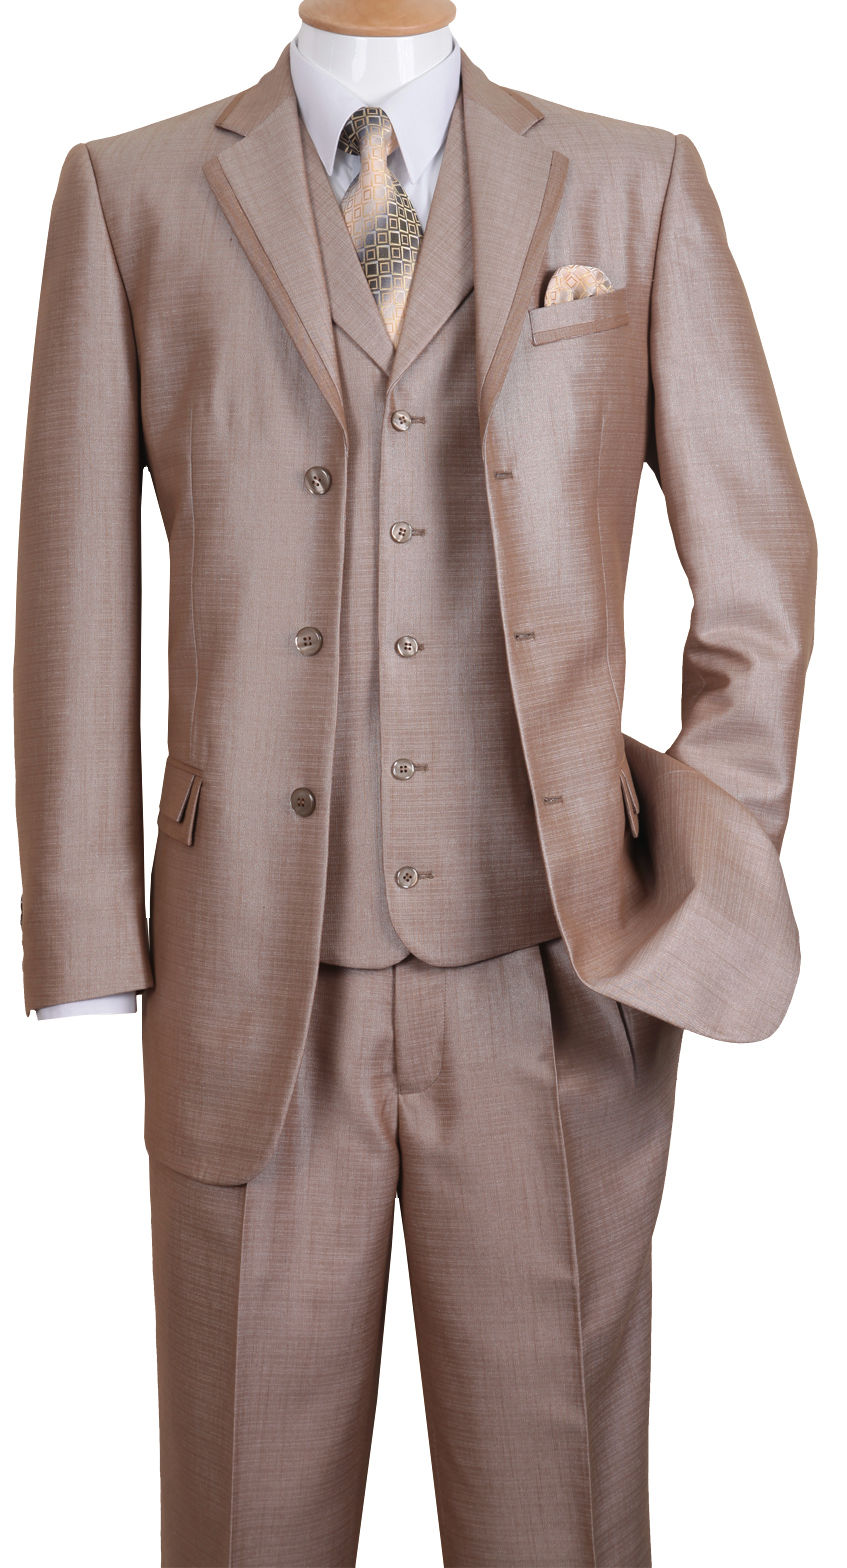 Fortino Landi Men Suit 5909V-Tan - Church Suits For Less